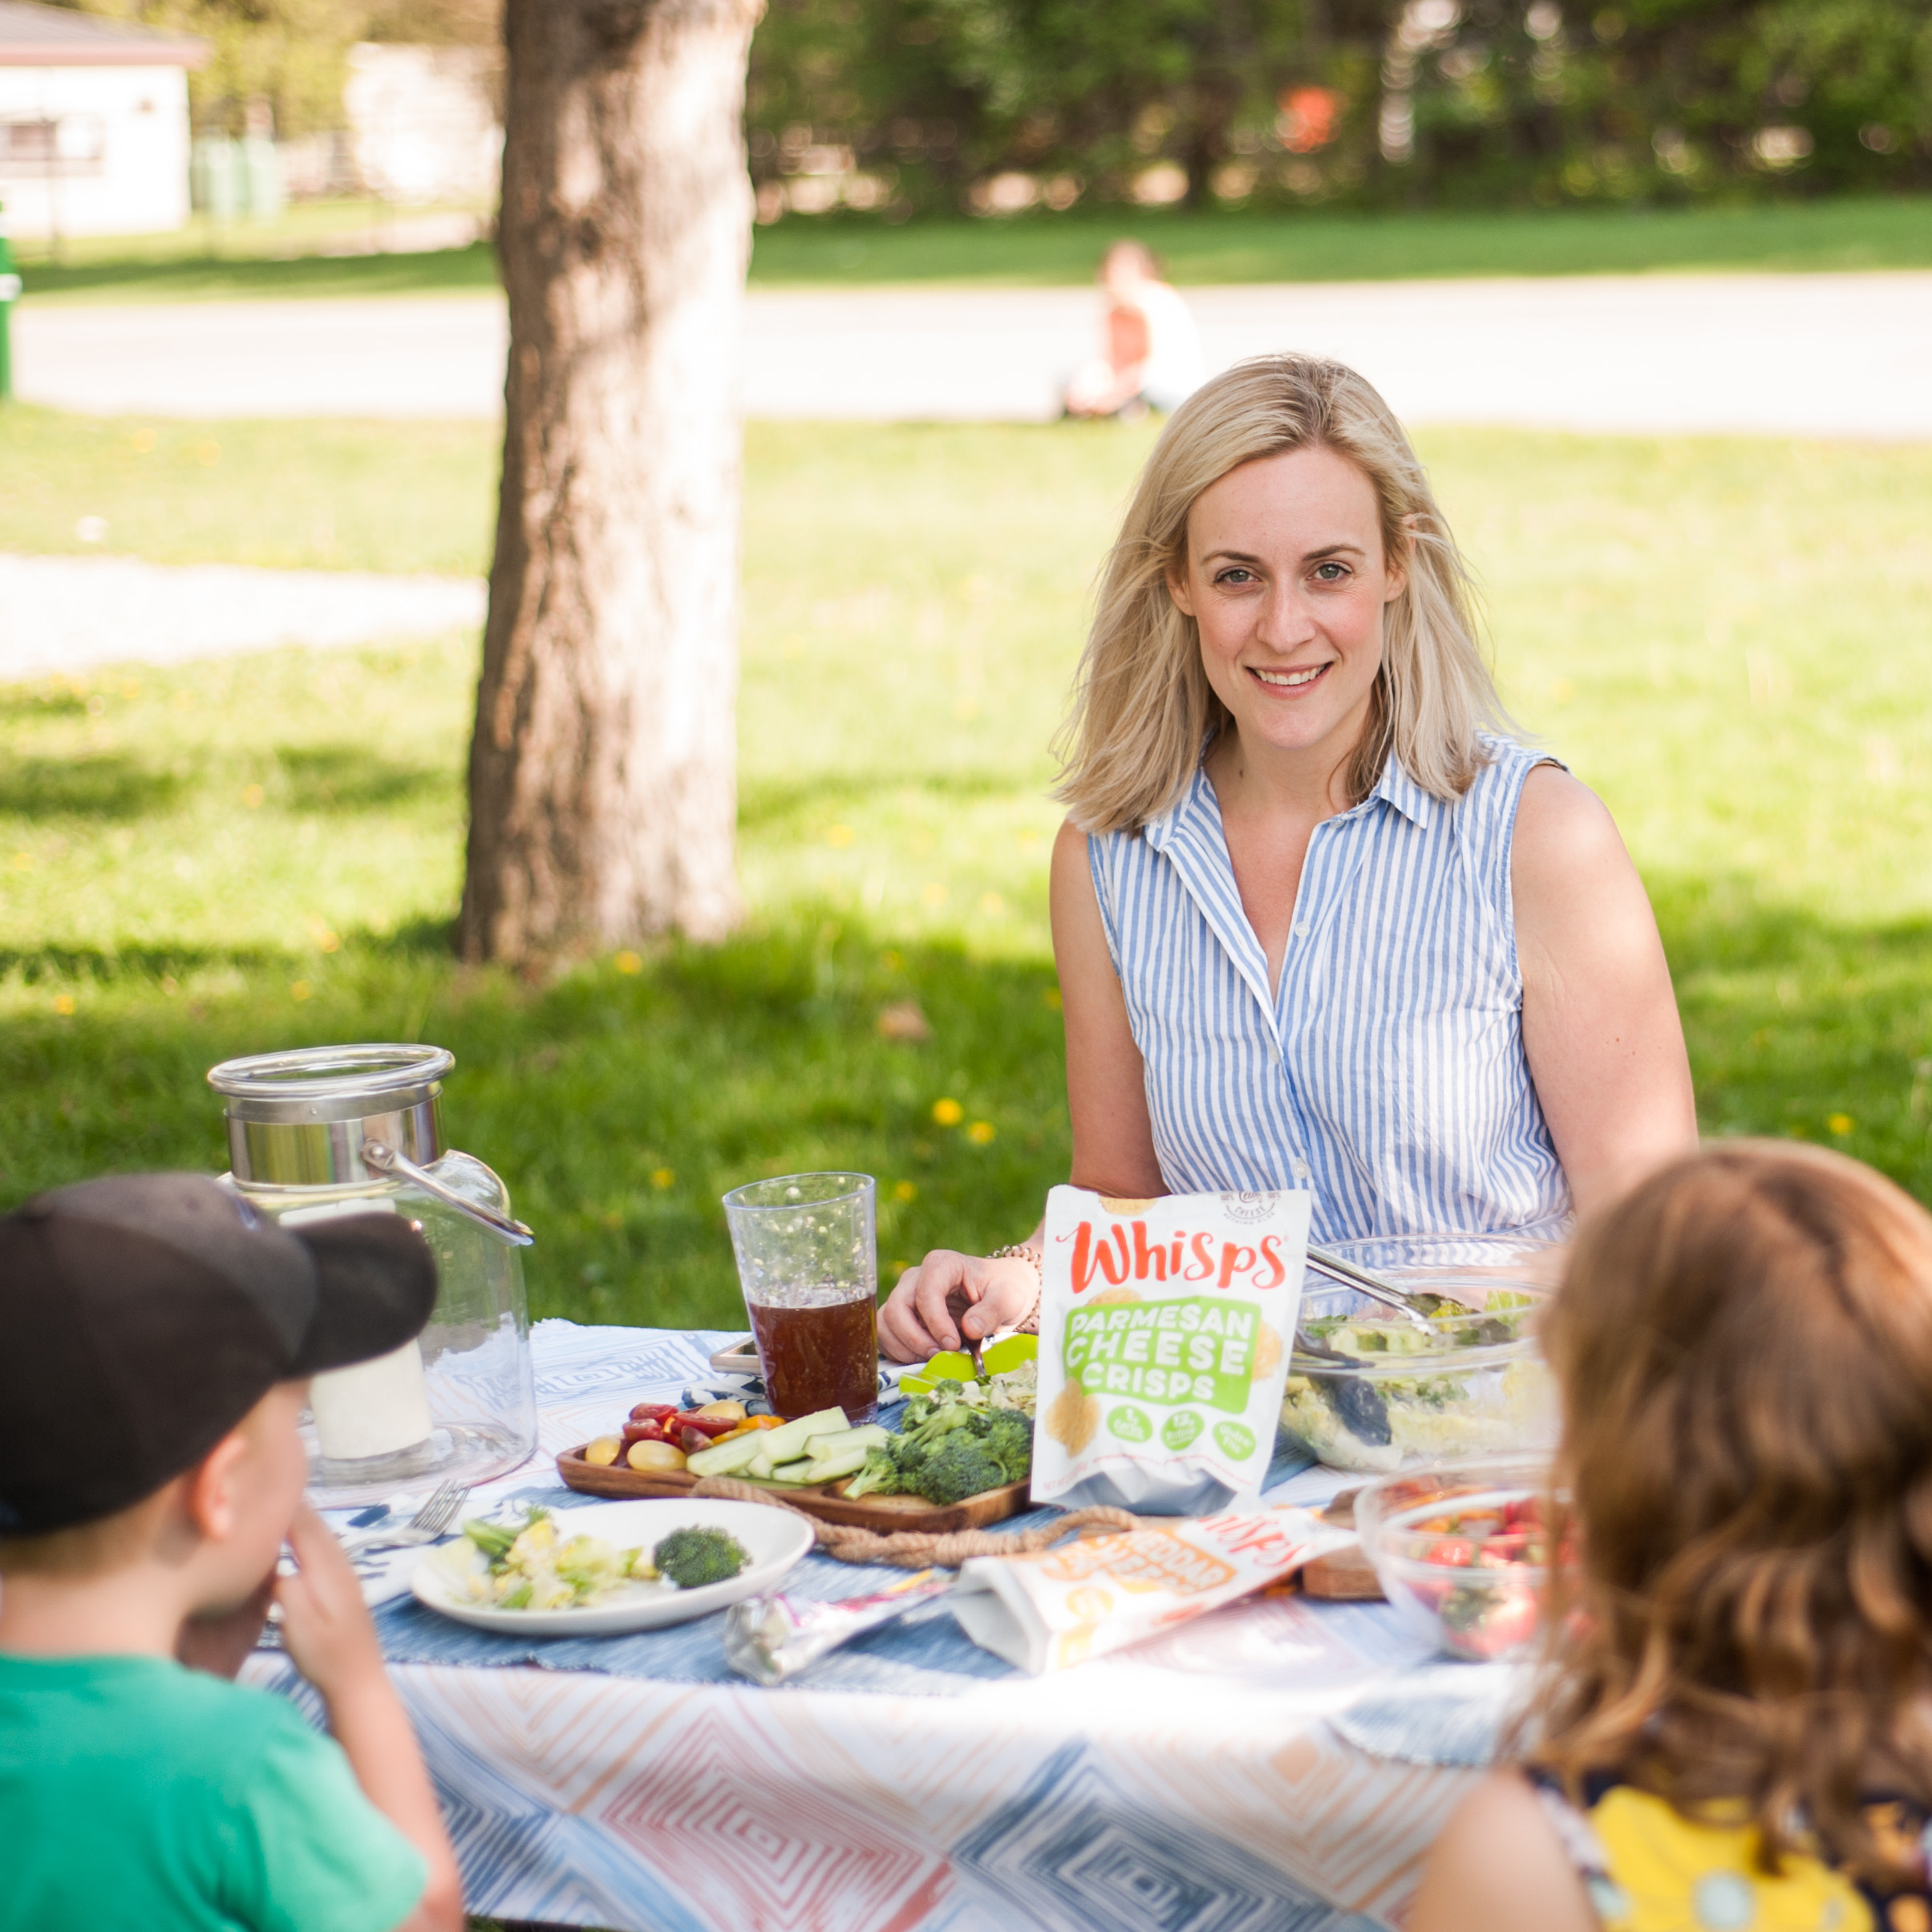 Keto Picnic Ideas What To Bring On Your Keto Summer Picnic